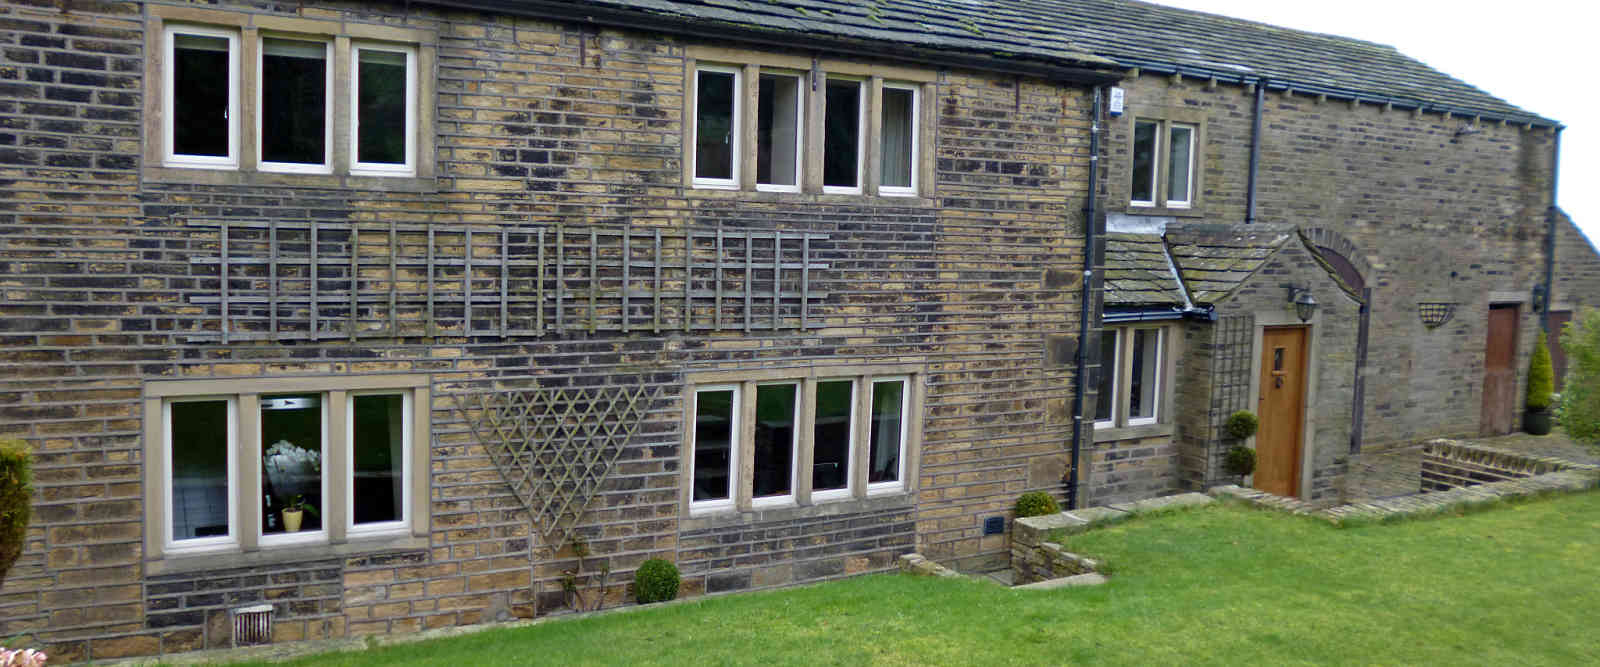 listed farmhouse with replacement aluminium windows